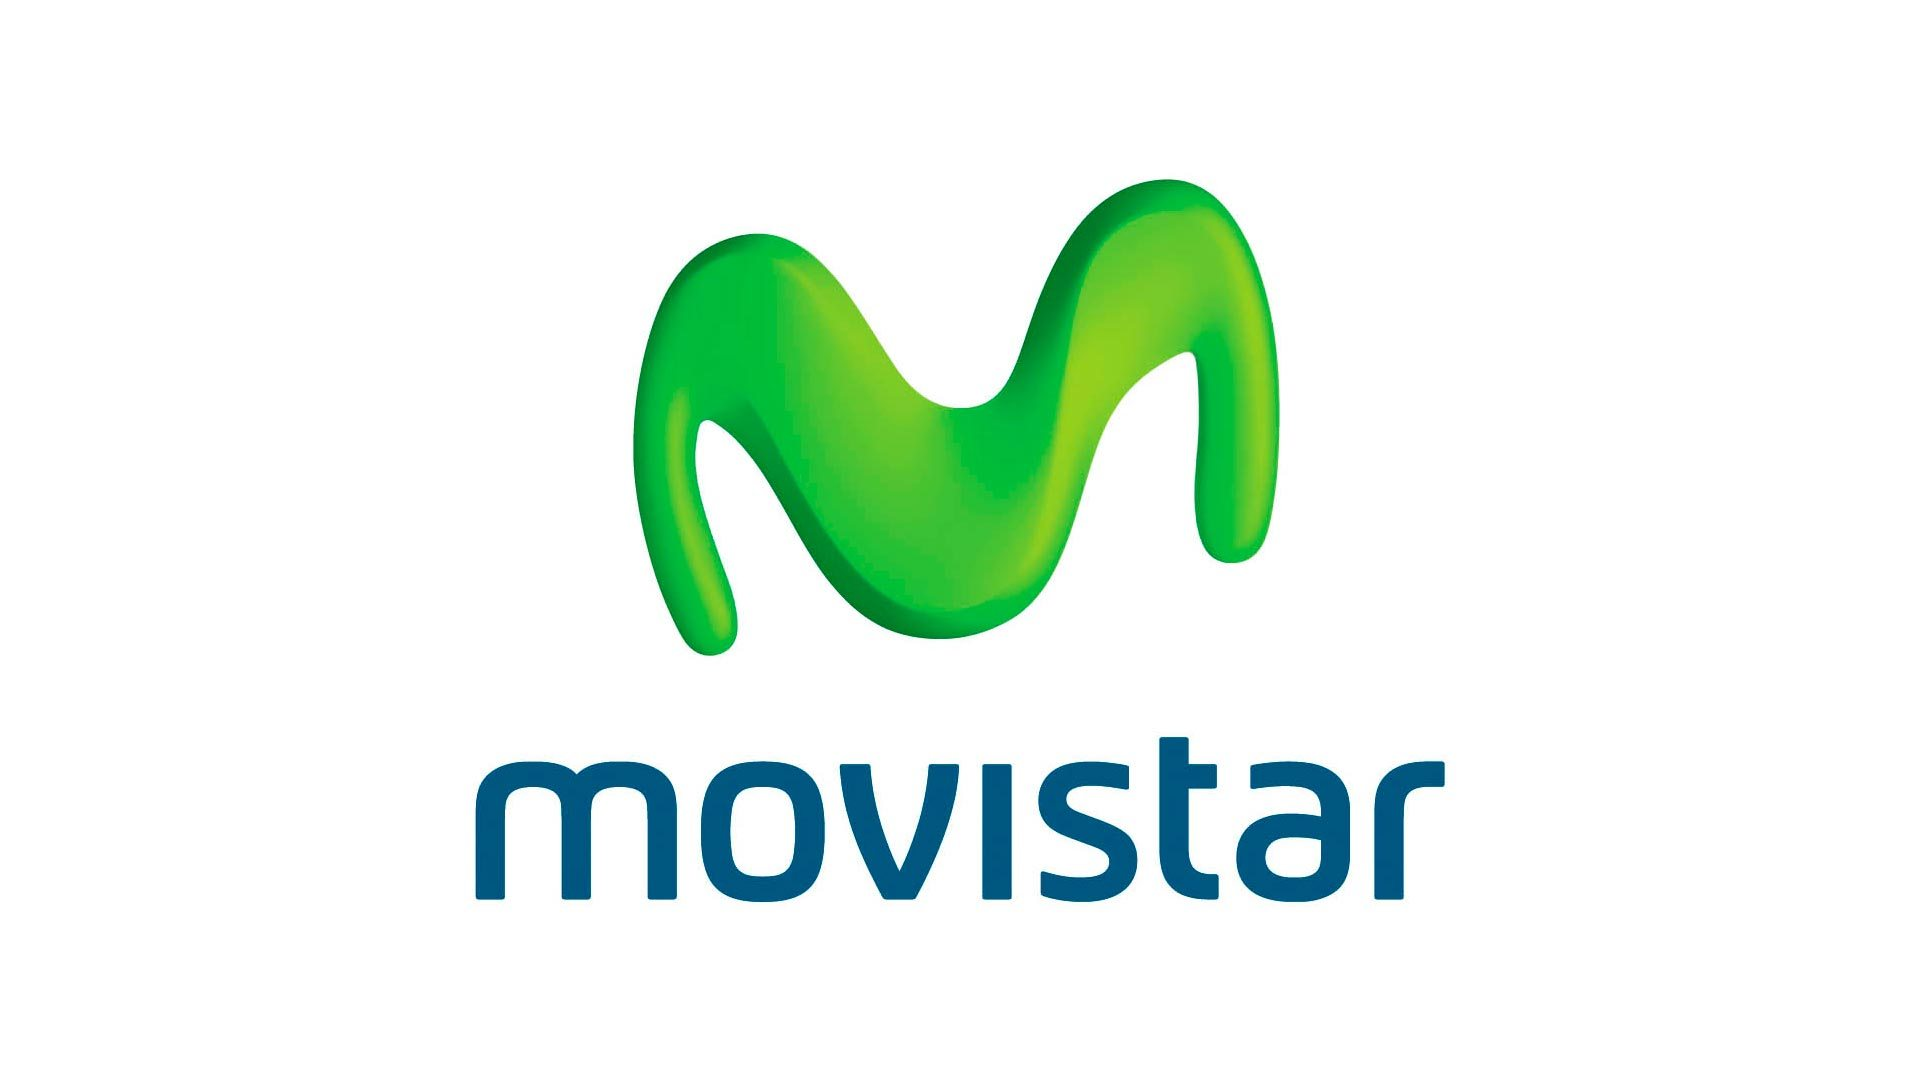 Come inserire l'e-mail Movistar gratuita 1